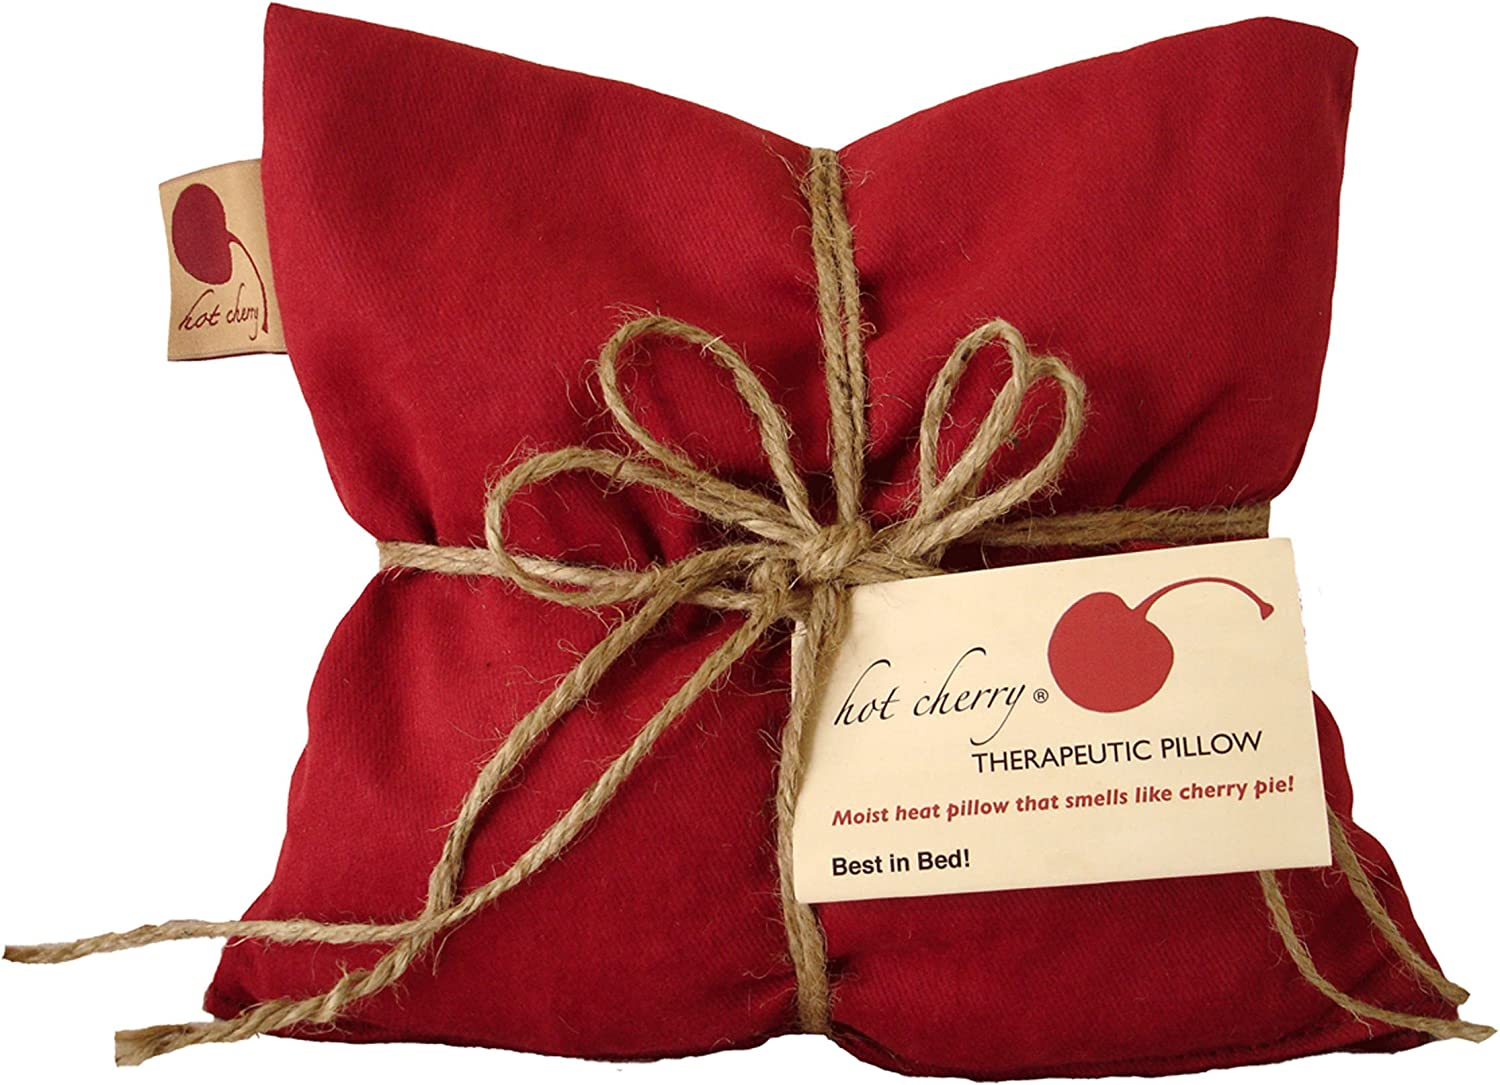 Hot Cherry Pit Pillow Square - Red Denim, Natural-Dyed (Minimal Package/Twine) Natural Moist Heat or Cold Therapy for Muscle Pain, Tension Relief, Headaches, Arthritis, Aromatherapy - Microwavable: Health & Personal Care